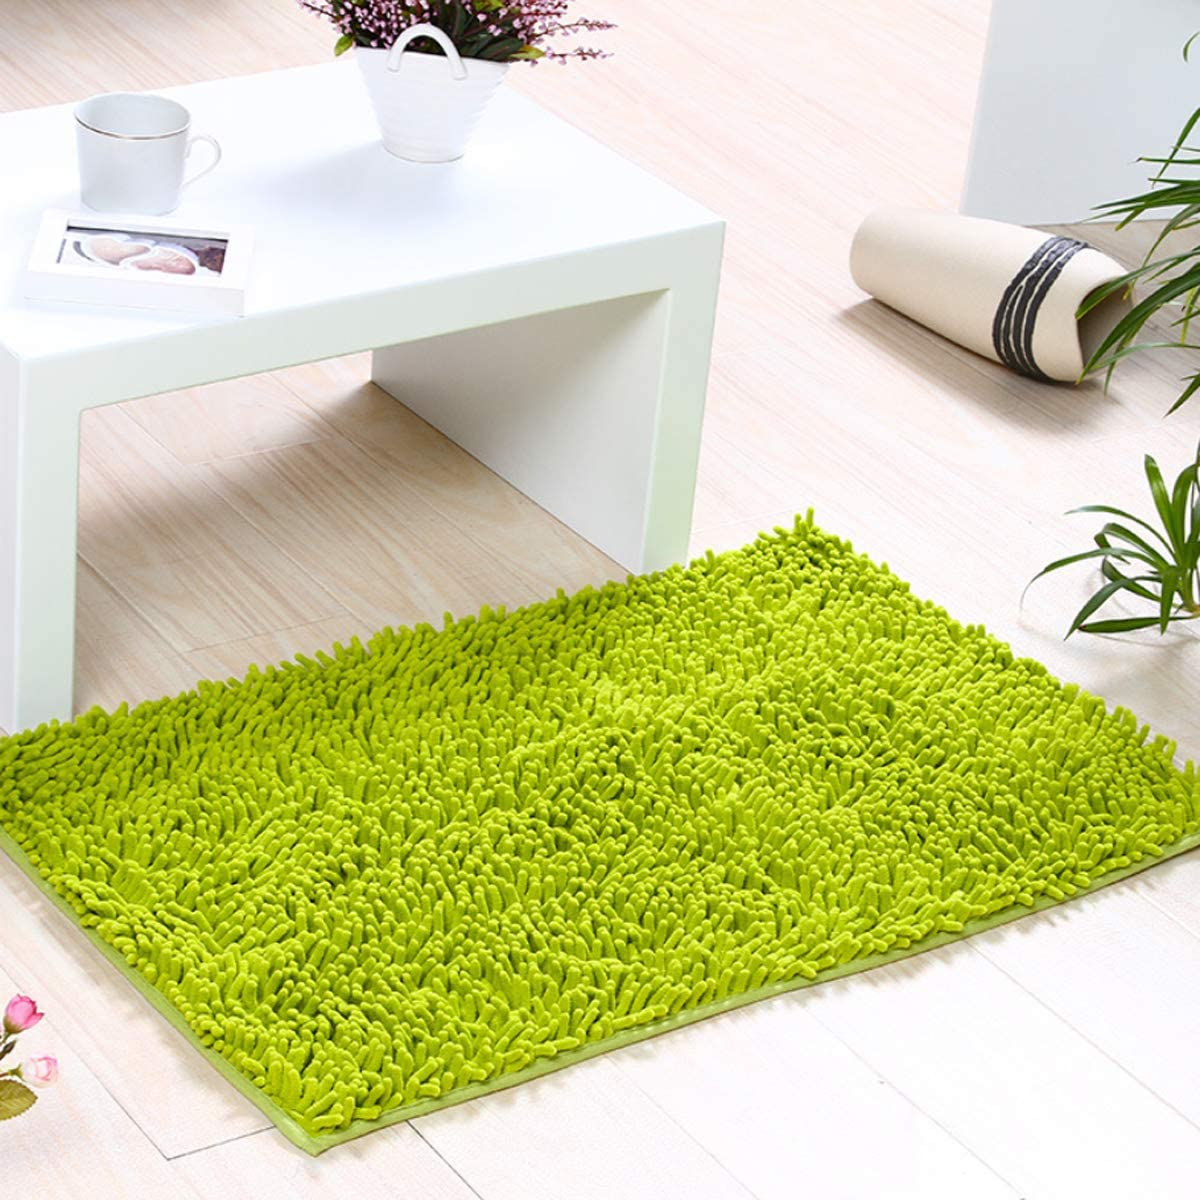 Chenille Bath Mat for Bathroom Rugs,Fluffy Soft and Absorbent Microfiber Shag Rug, Machine Wash Dry Wash - Perfect Plush Carpet Mats for Tub, Shower, and Bedroom (20X31inch, sage Green)